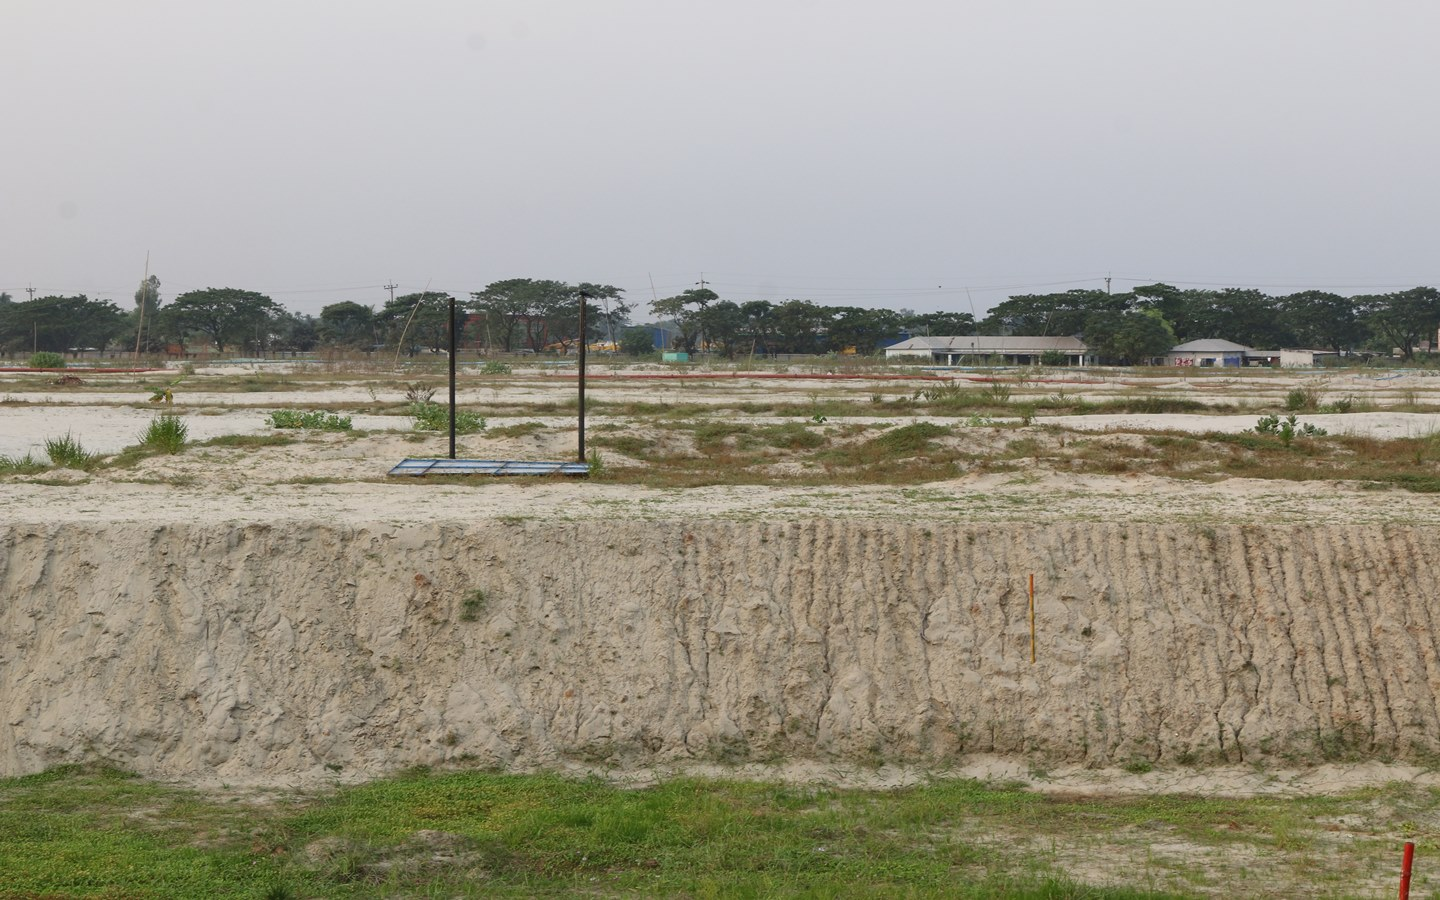 The availability of so much land presents the perfect real estate investment opportunity